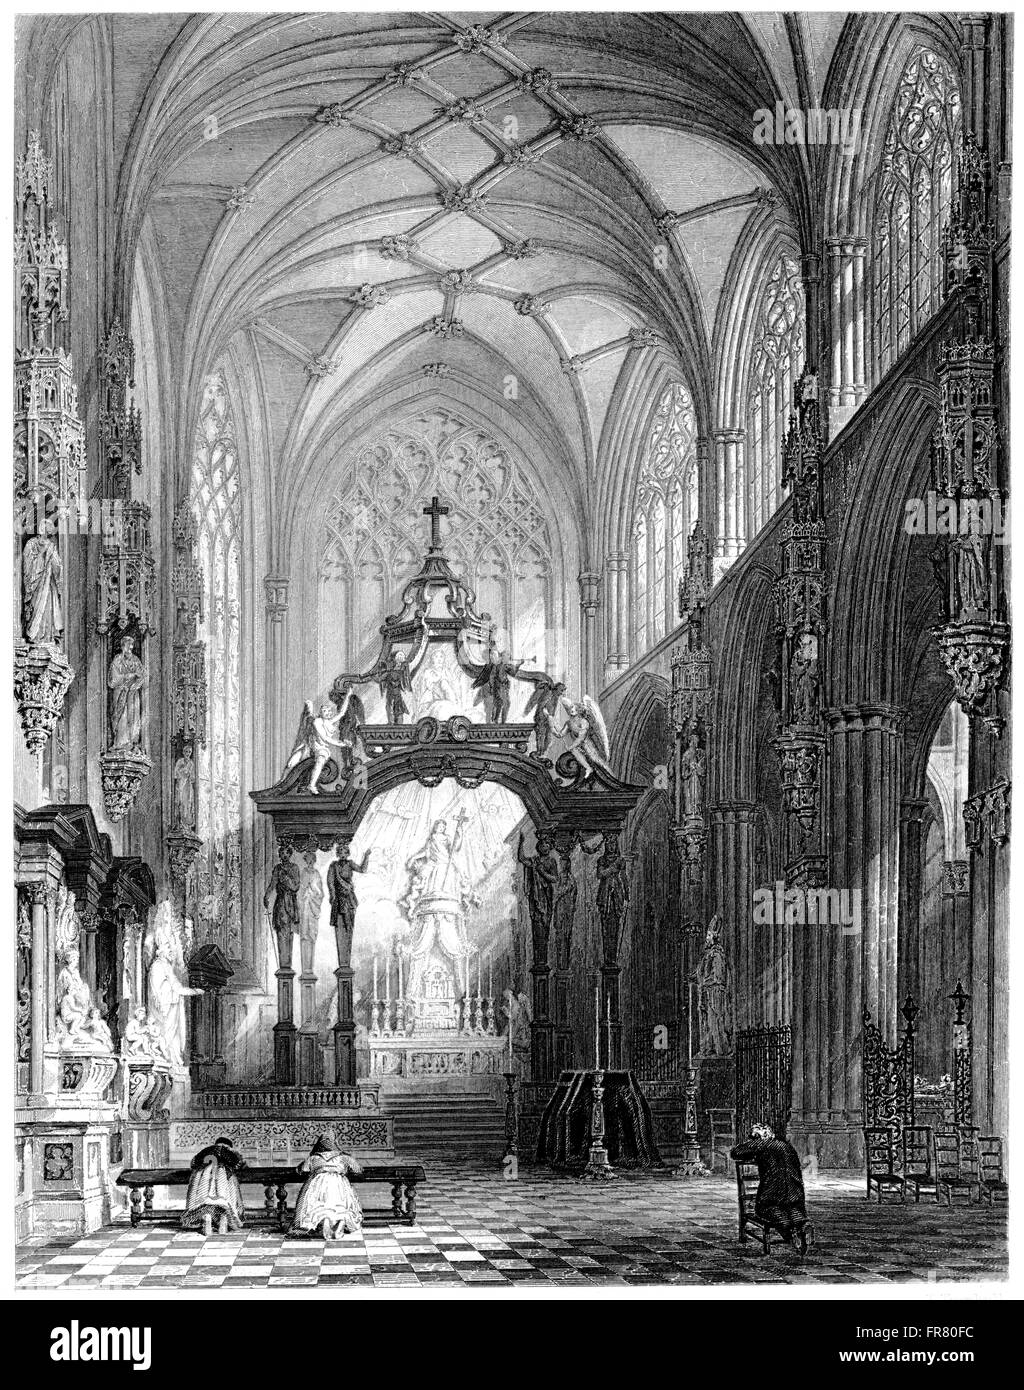 Engraving of the Chapel of St Gudule, Brussels scanned at high Stock